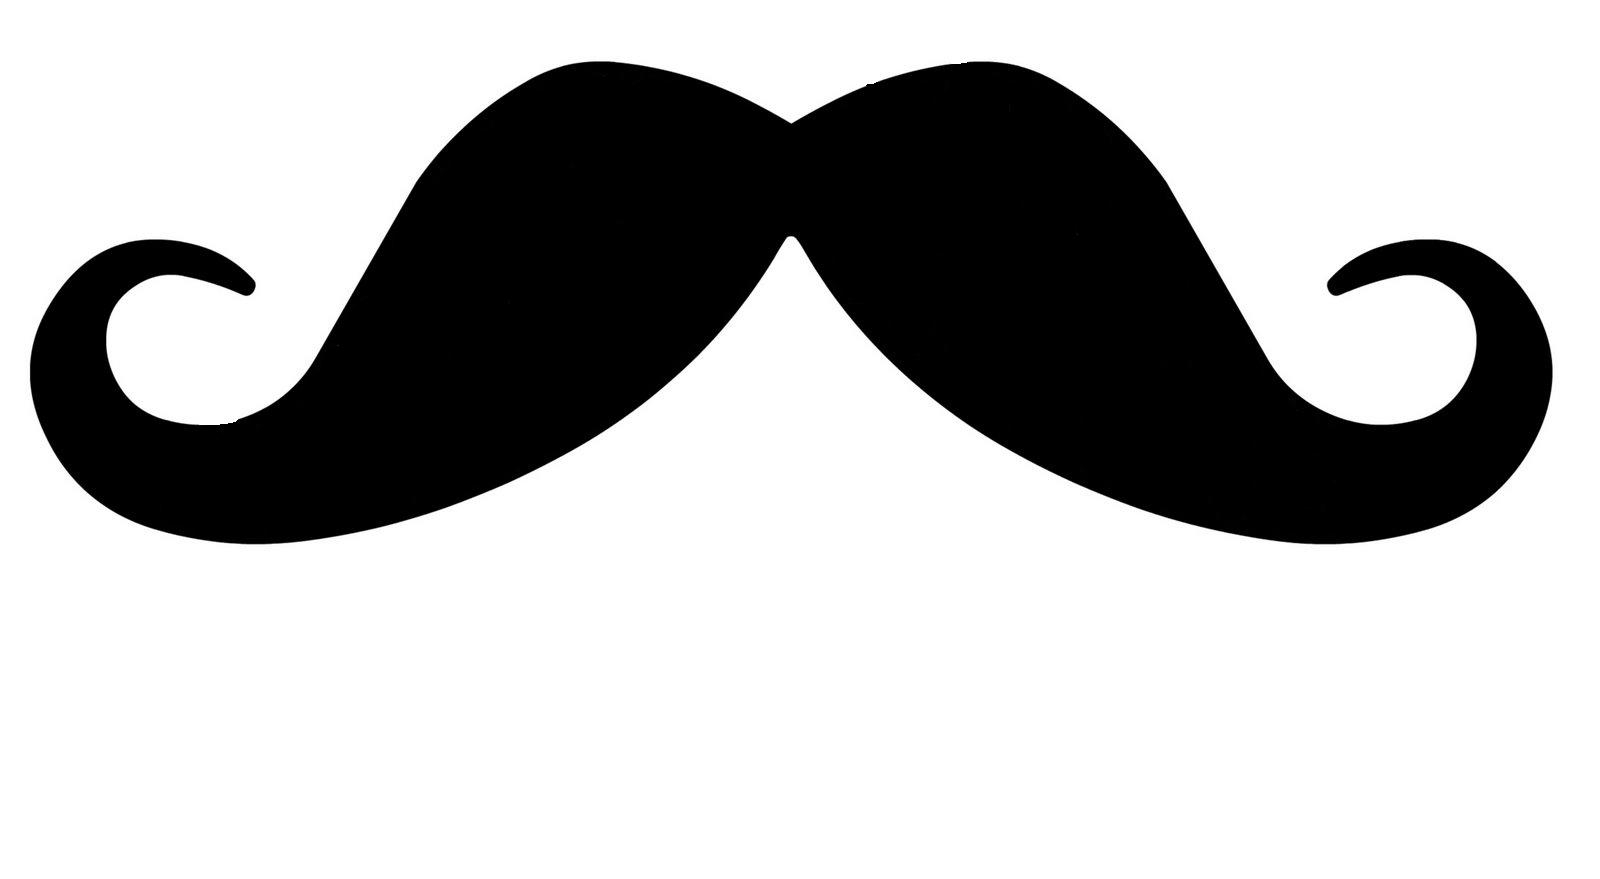 Mustache clipart Awesome Mustache Clipart Free Download Clip.